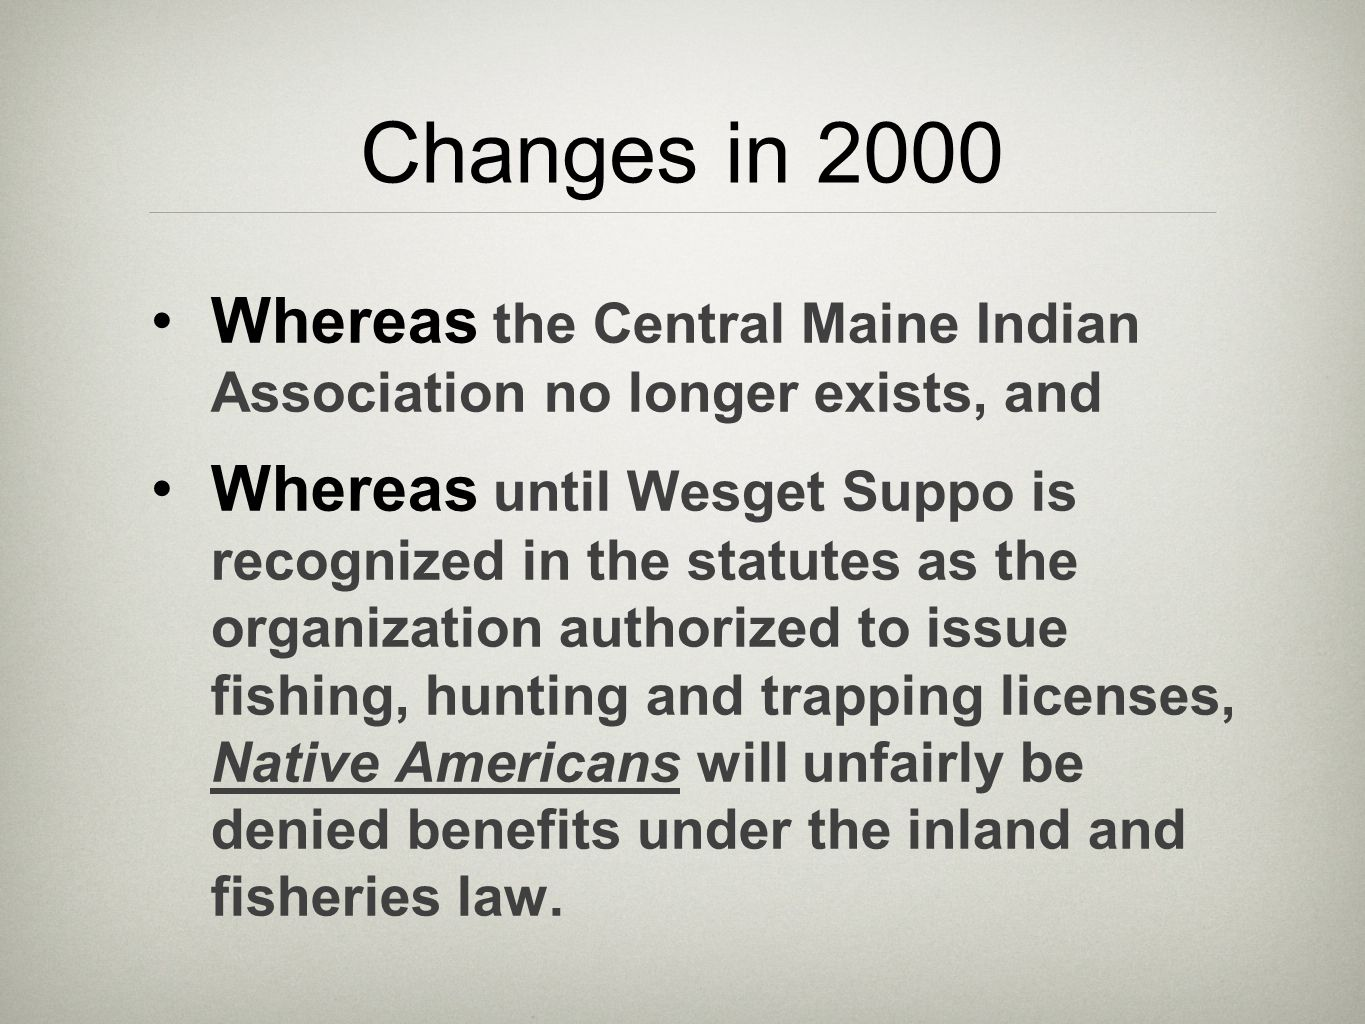 Changes in 2000 Whereas the Central Maine Indian Association no longer exists, and Whereas until Wesget Suppo is recognized in the statutes as the organization authorized to issue fishing, hunting and trapping licenses, Native Americans will unfairly be denied benefits under the inland and fisheries law.